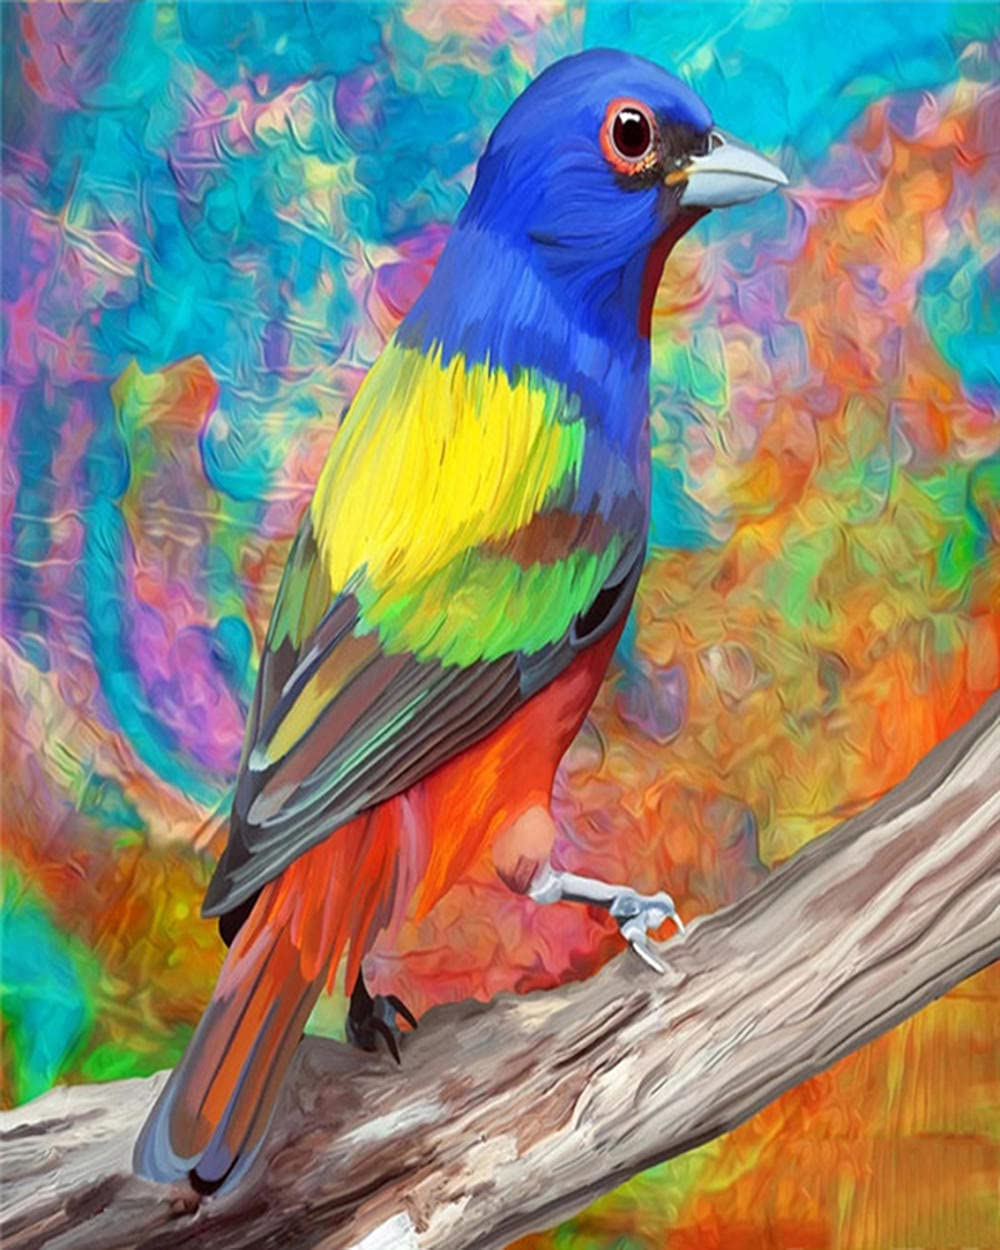 HRKDHBS DIY Oil Paint by Number Pa Bird 40X50Cm with Frame Cheap Clearance SALE Limited time Kit